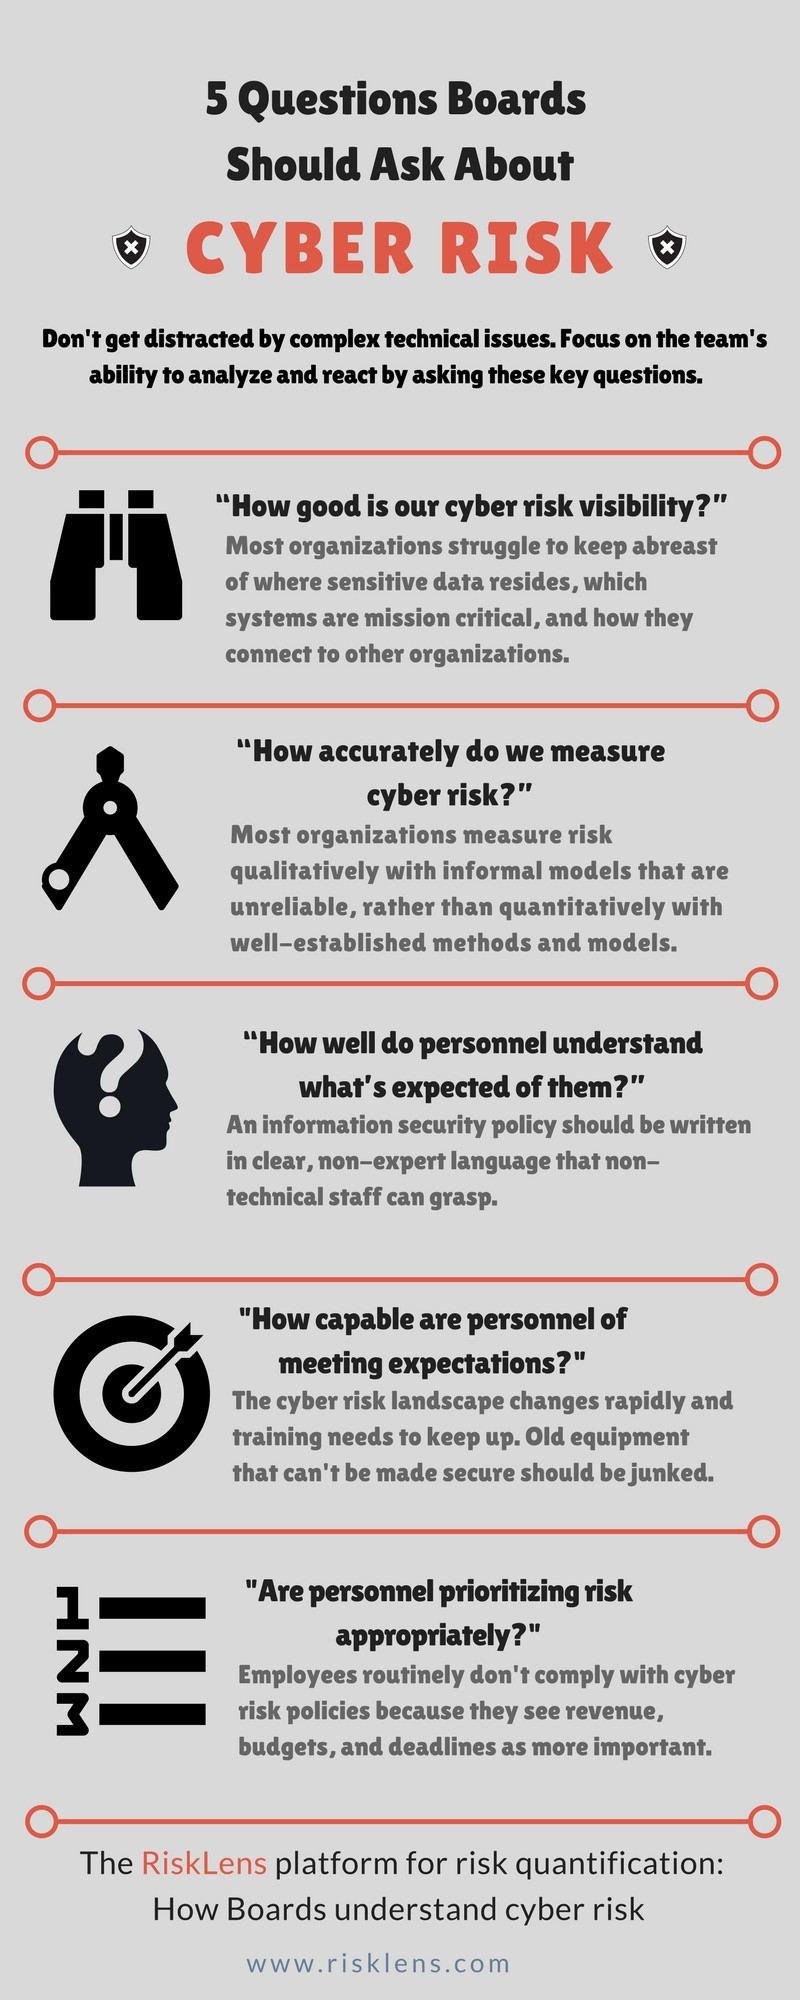 5 Questions Boards Should Ask About Cyber Risk.jpg